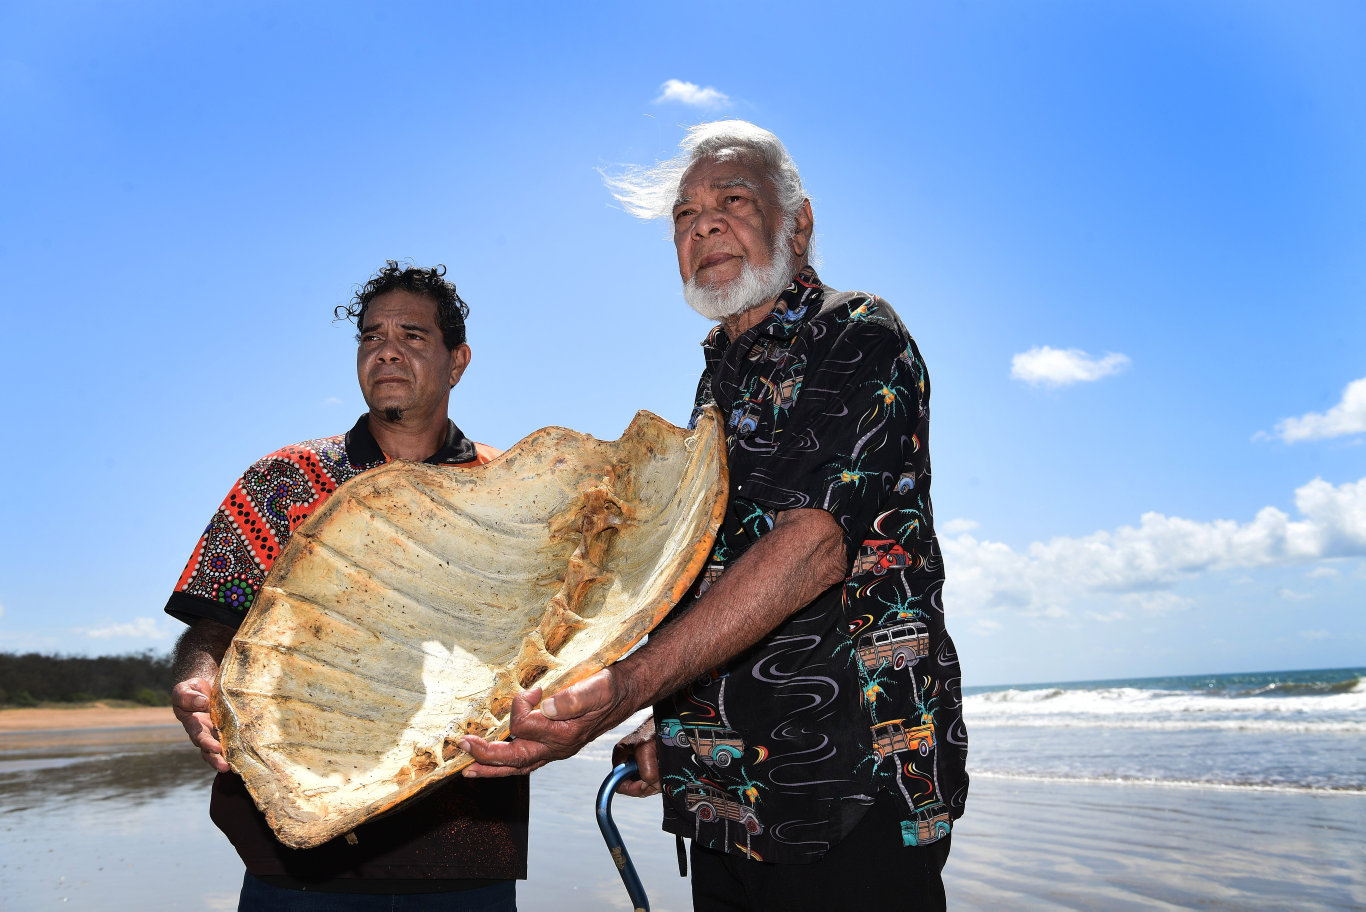 MEE-BAR: Taribelang cultural deliverer Byron Broome and Taribelang Bunda elder Willie Broome at Mon Repos beach.